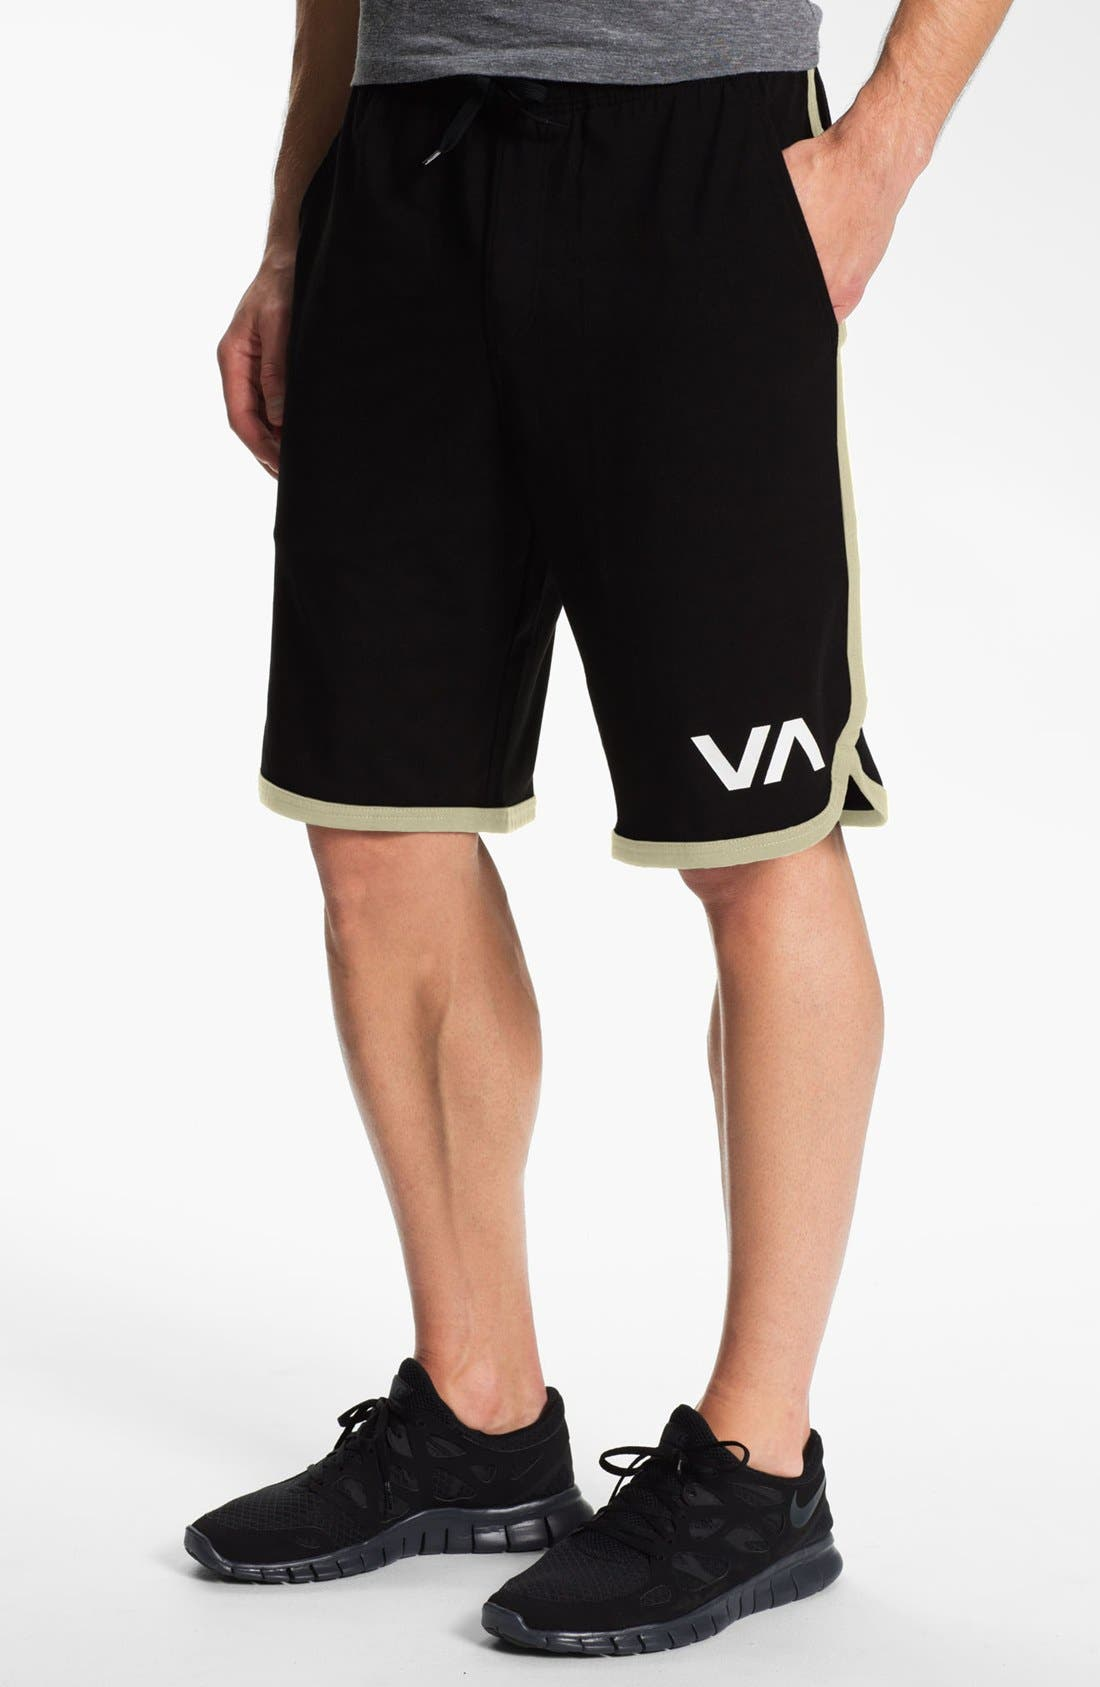 Alternate Image 1 Selected - RVCA 'Sport' Athletic Shorts